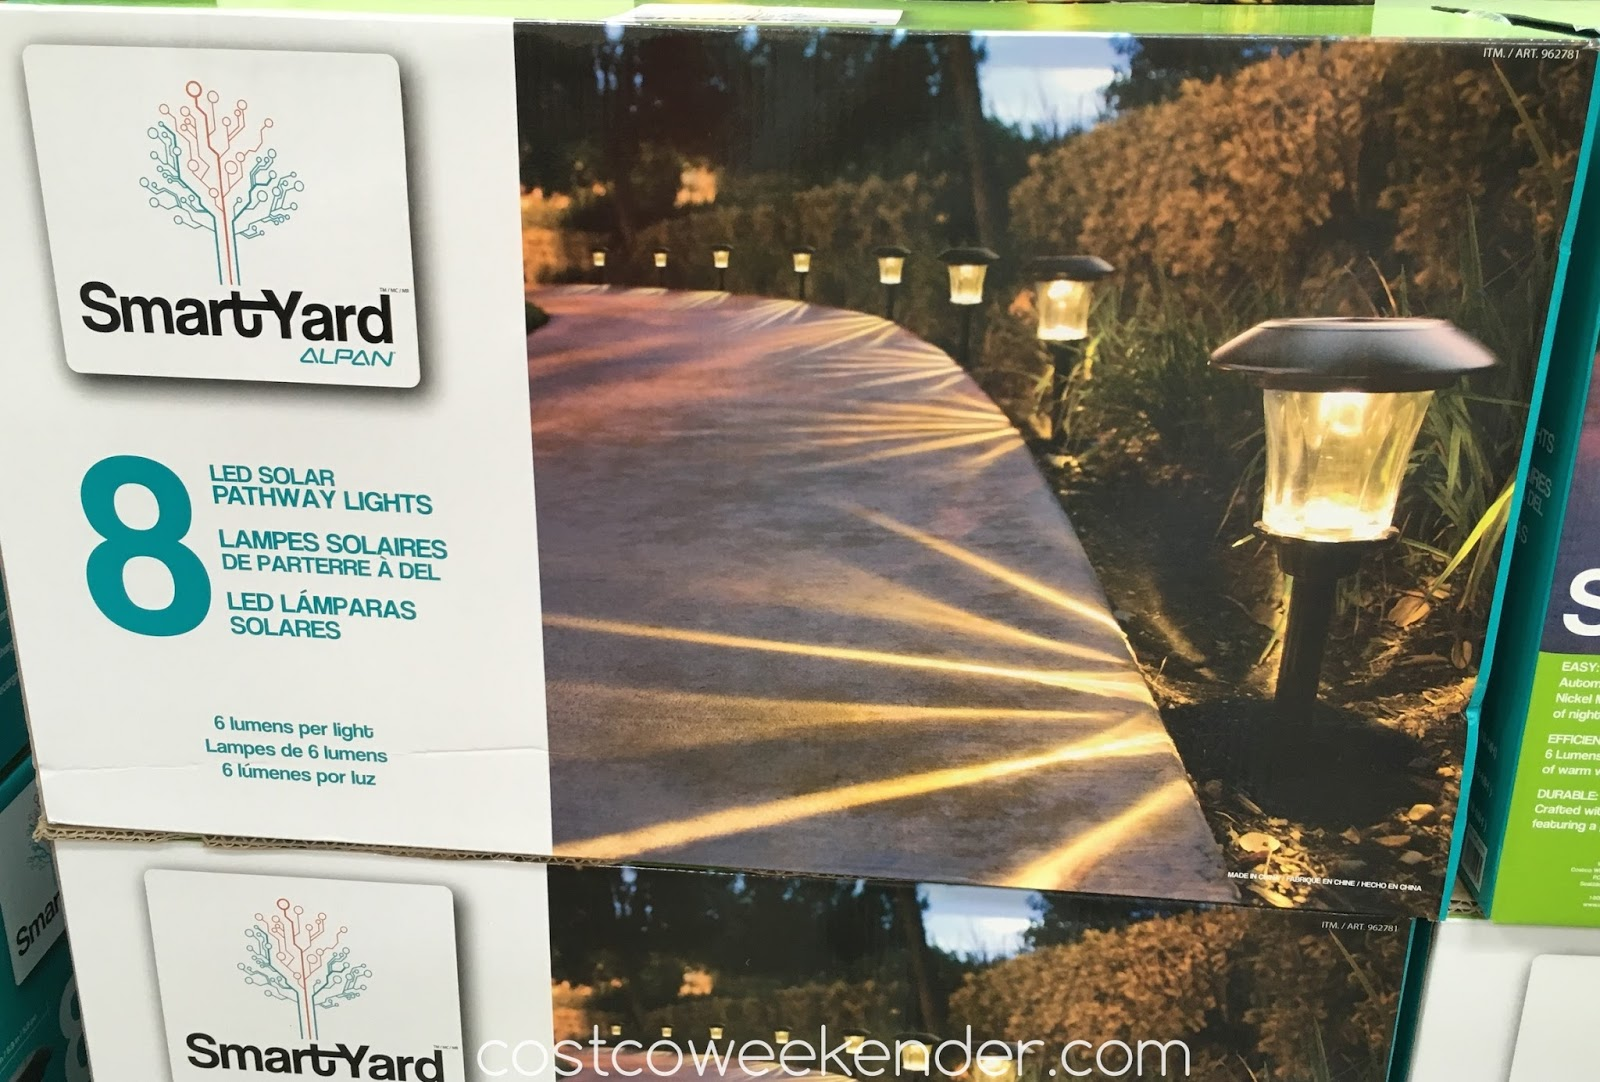 Make Your Home S Entrance Well Lit With The Smartyard Led Solar Pathway Lights Model 10193